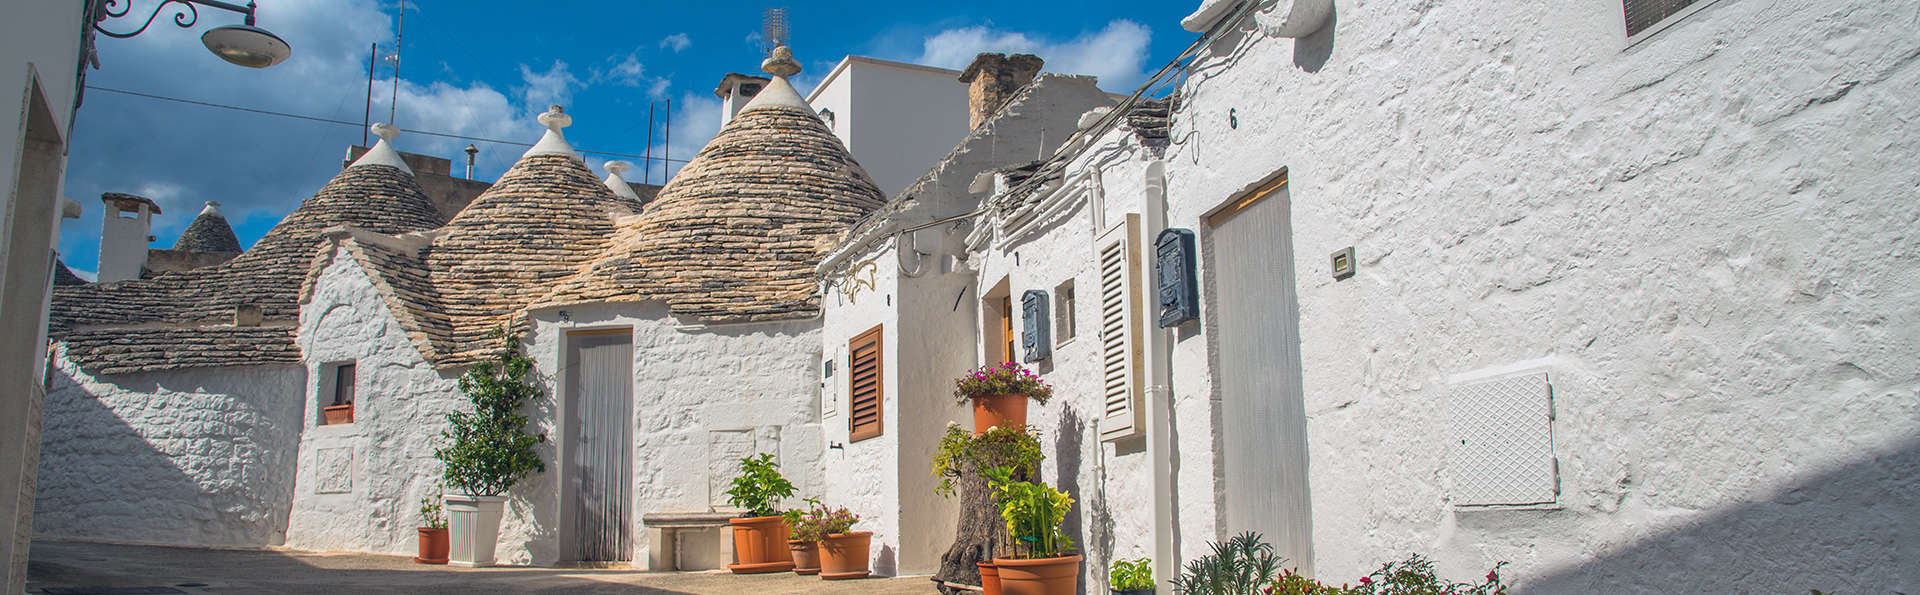 Victor Country Hotel - Edit_Alberobello.jpg